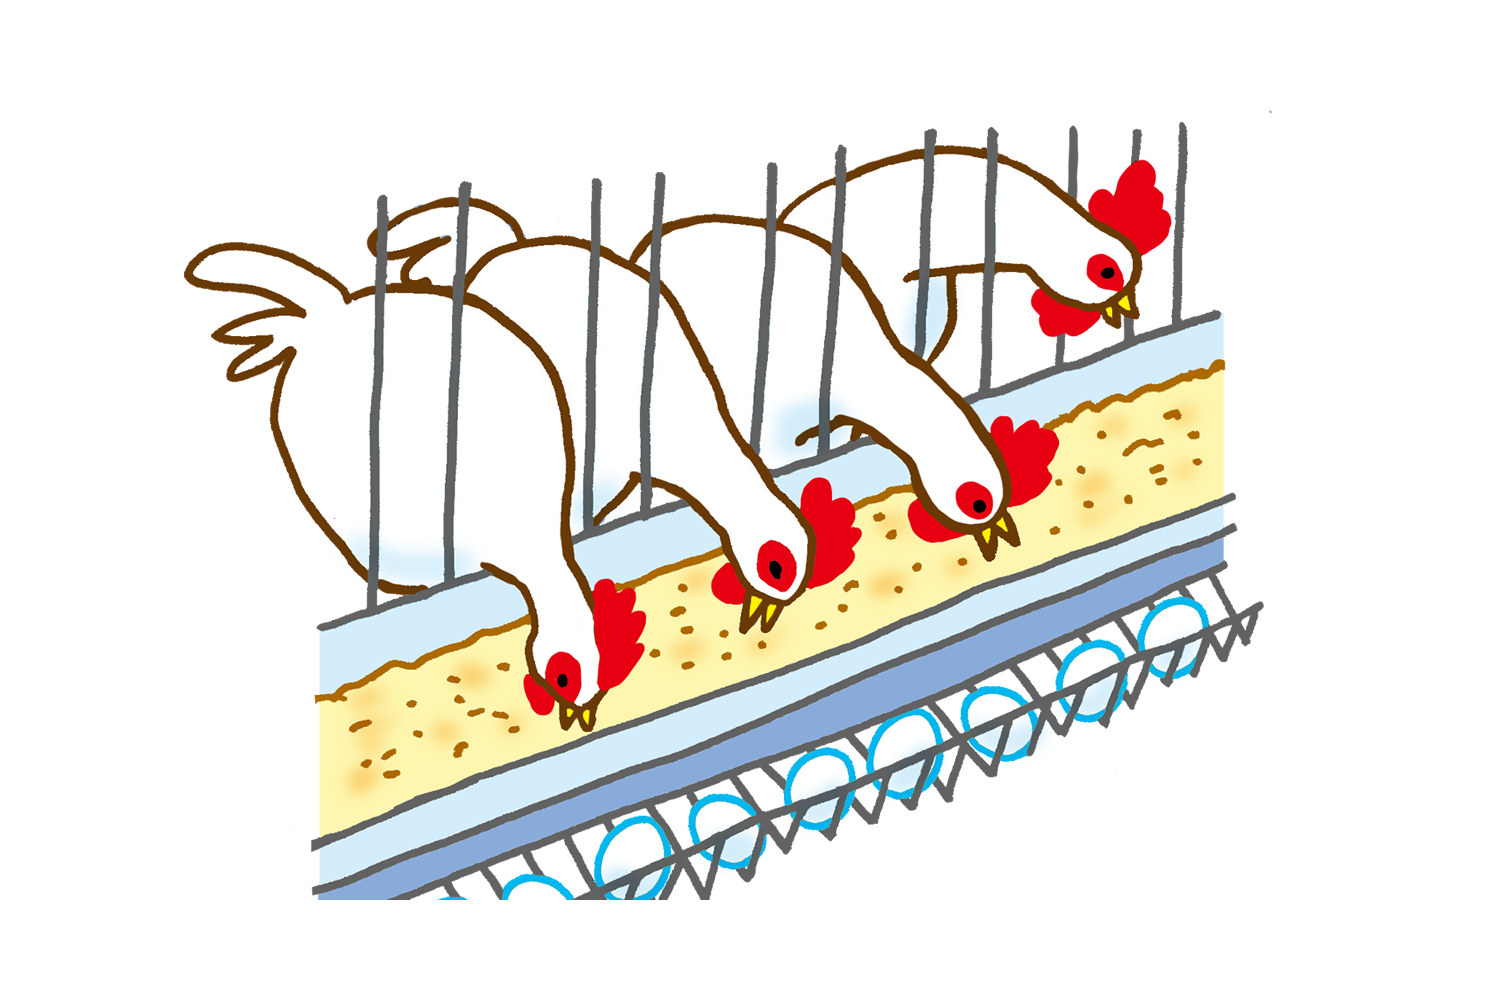 Clipart farm poultry farming, Clipart farm poultry farming.